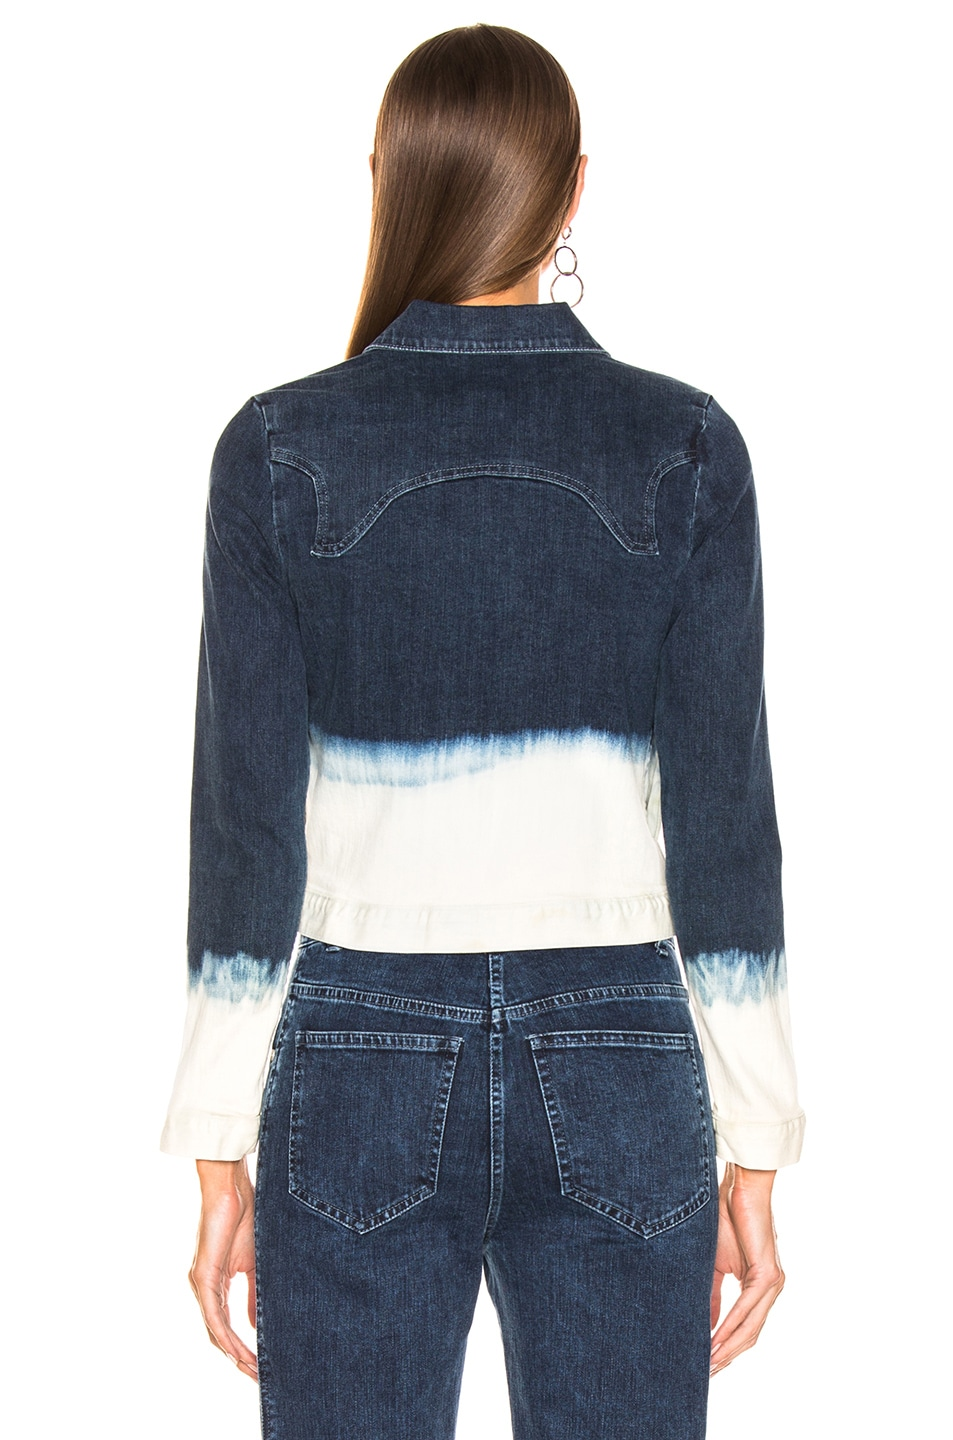 Image 4 of Miaou Lex Jacket in Indigo & White Dip Dye